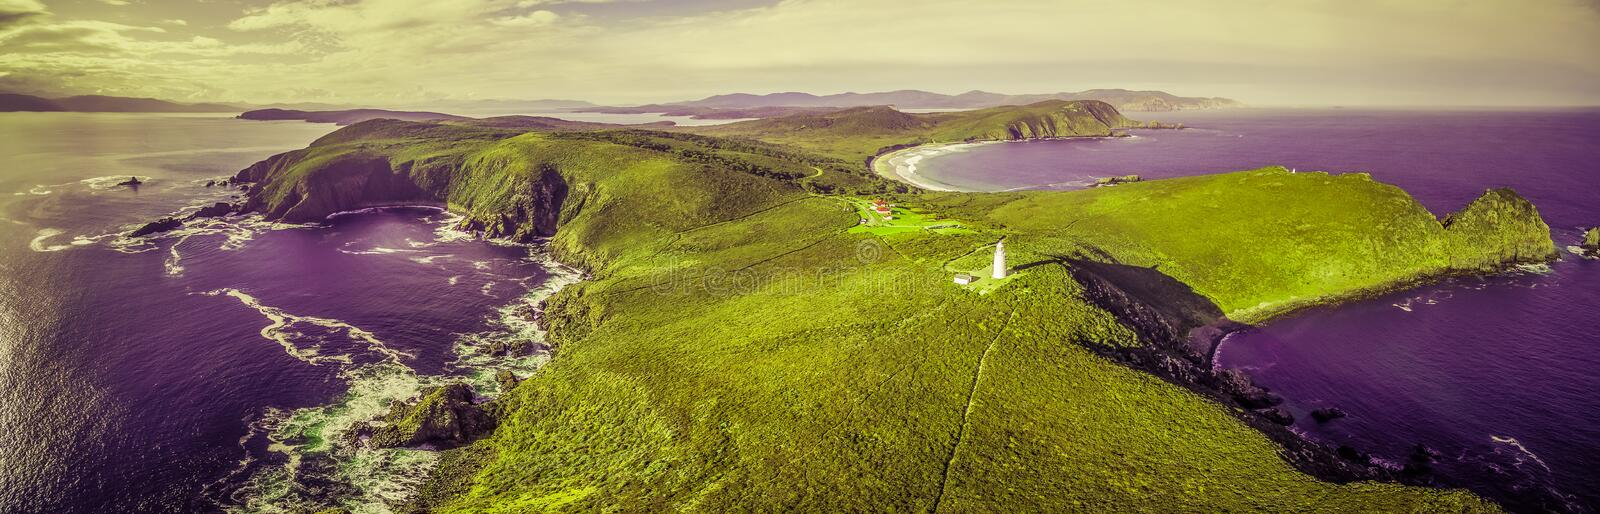 Surreal aerial landscape of ocean, land, and lighthouse stock photo